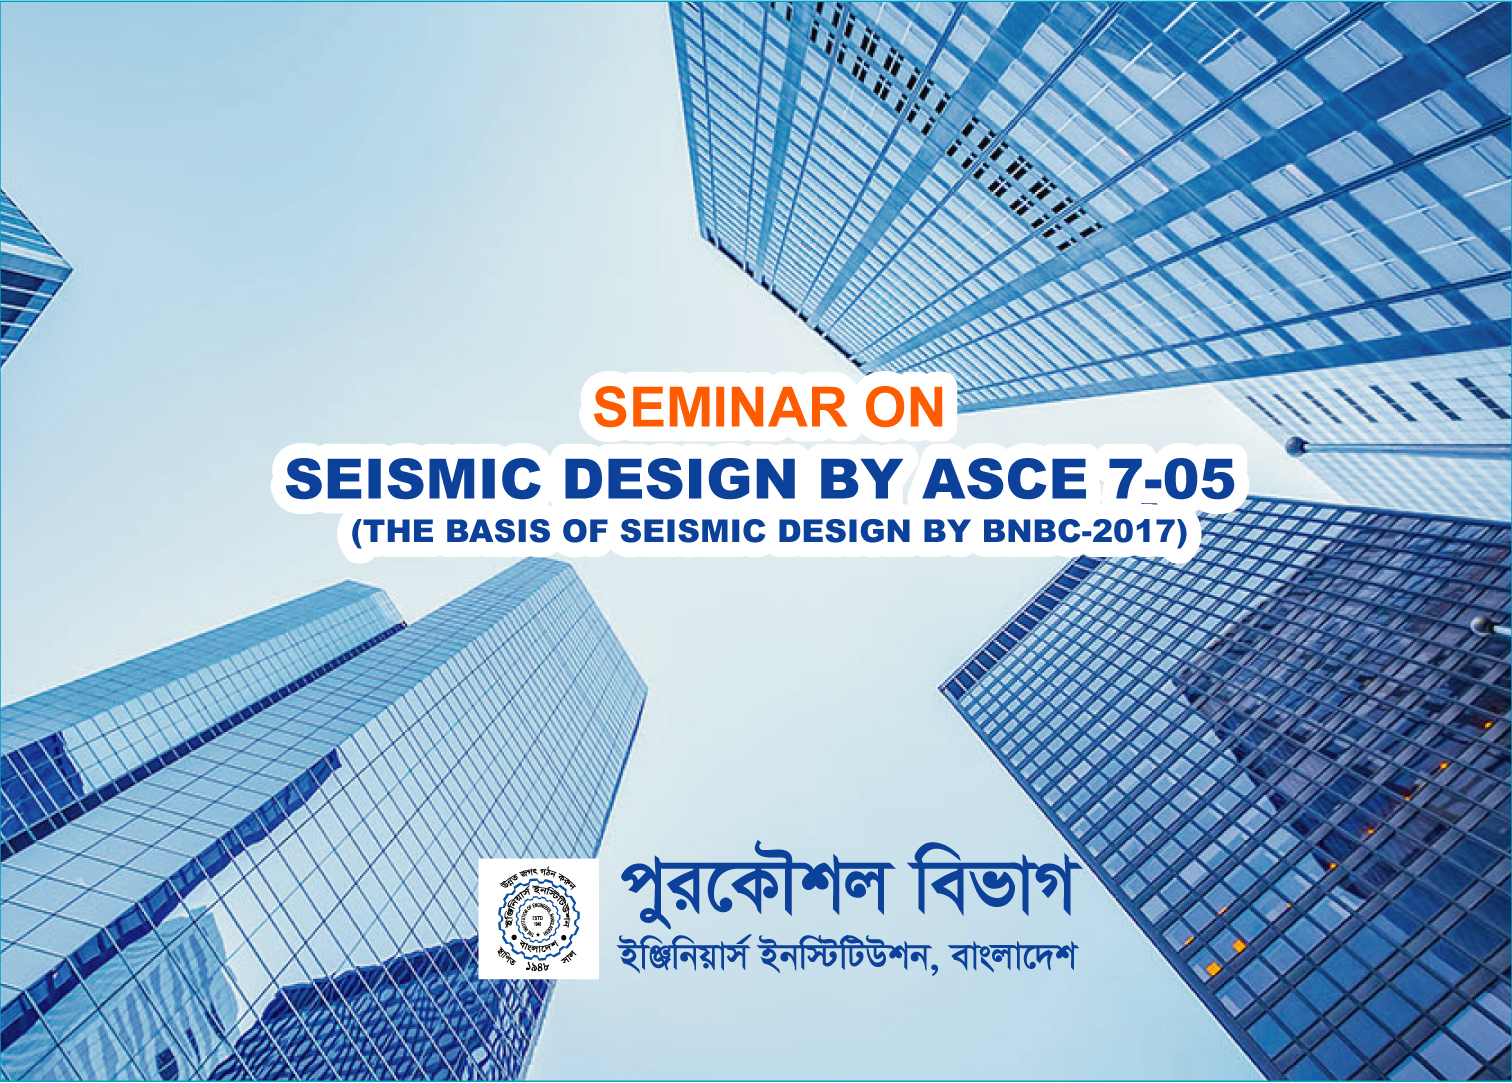 Seminar on: Seismic Design by ASCE 7-05.